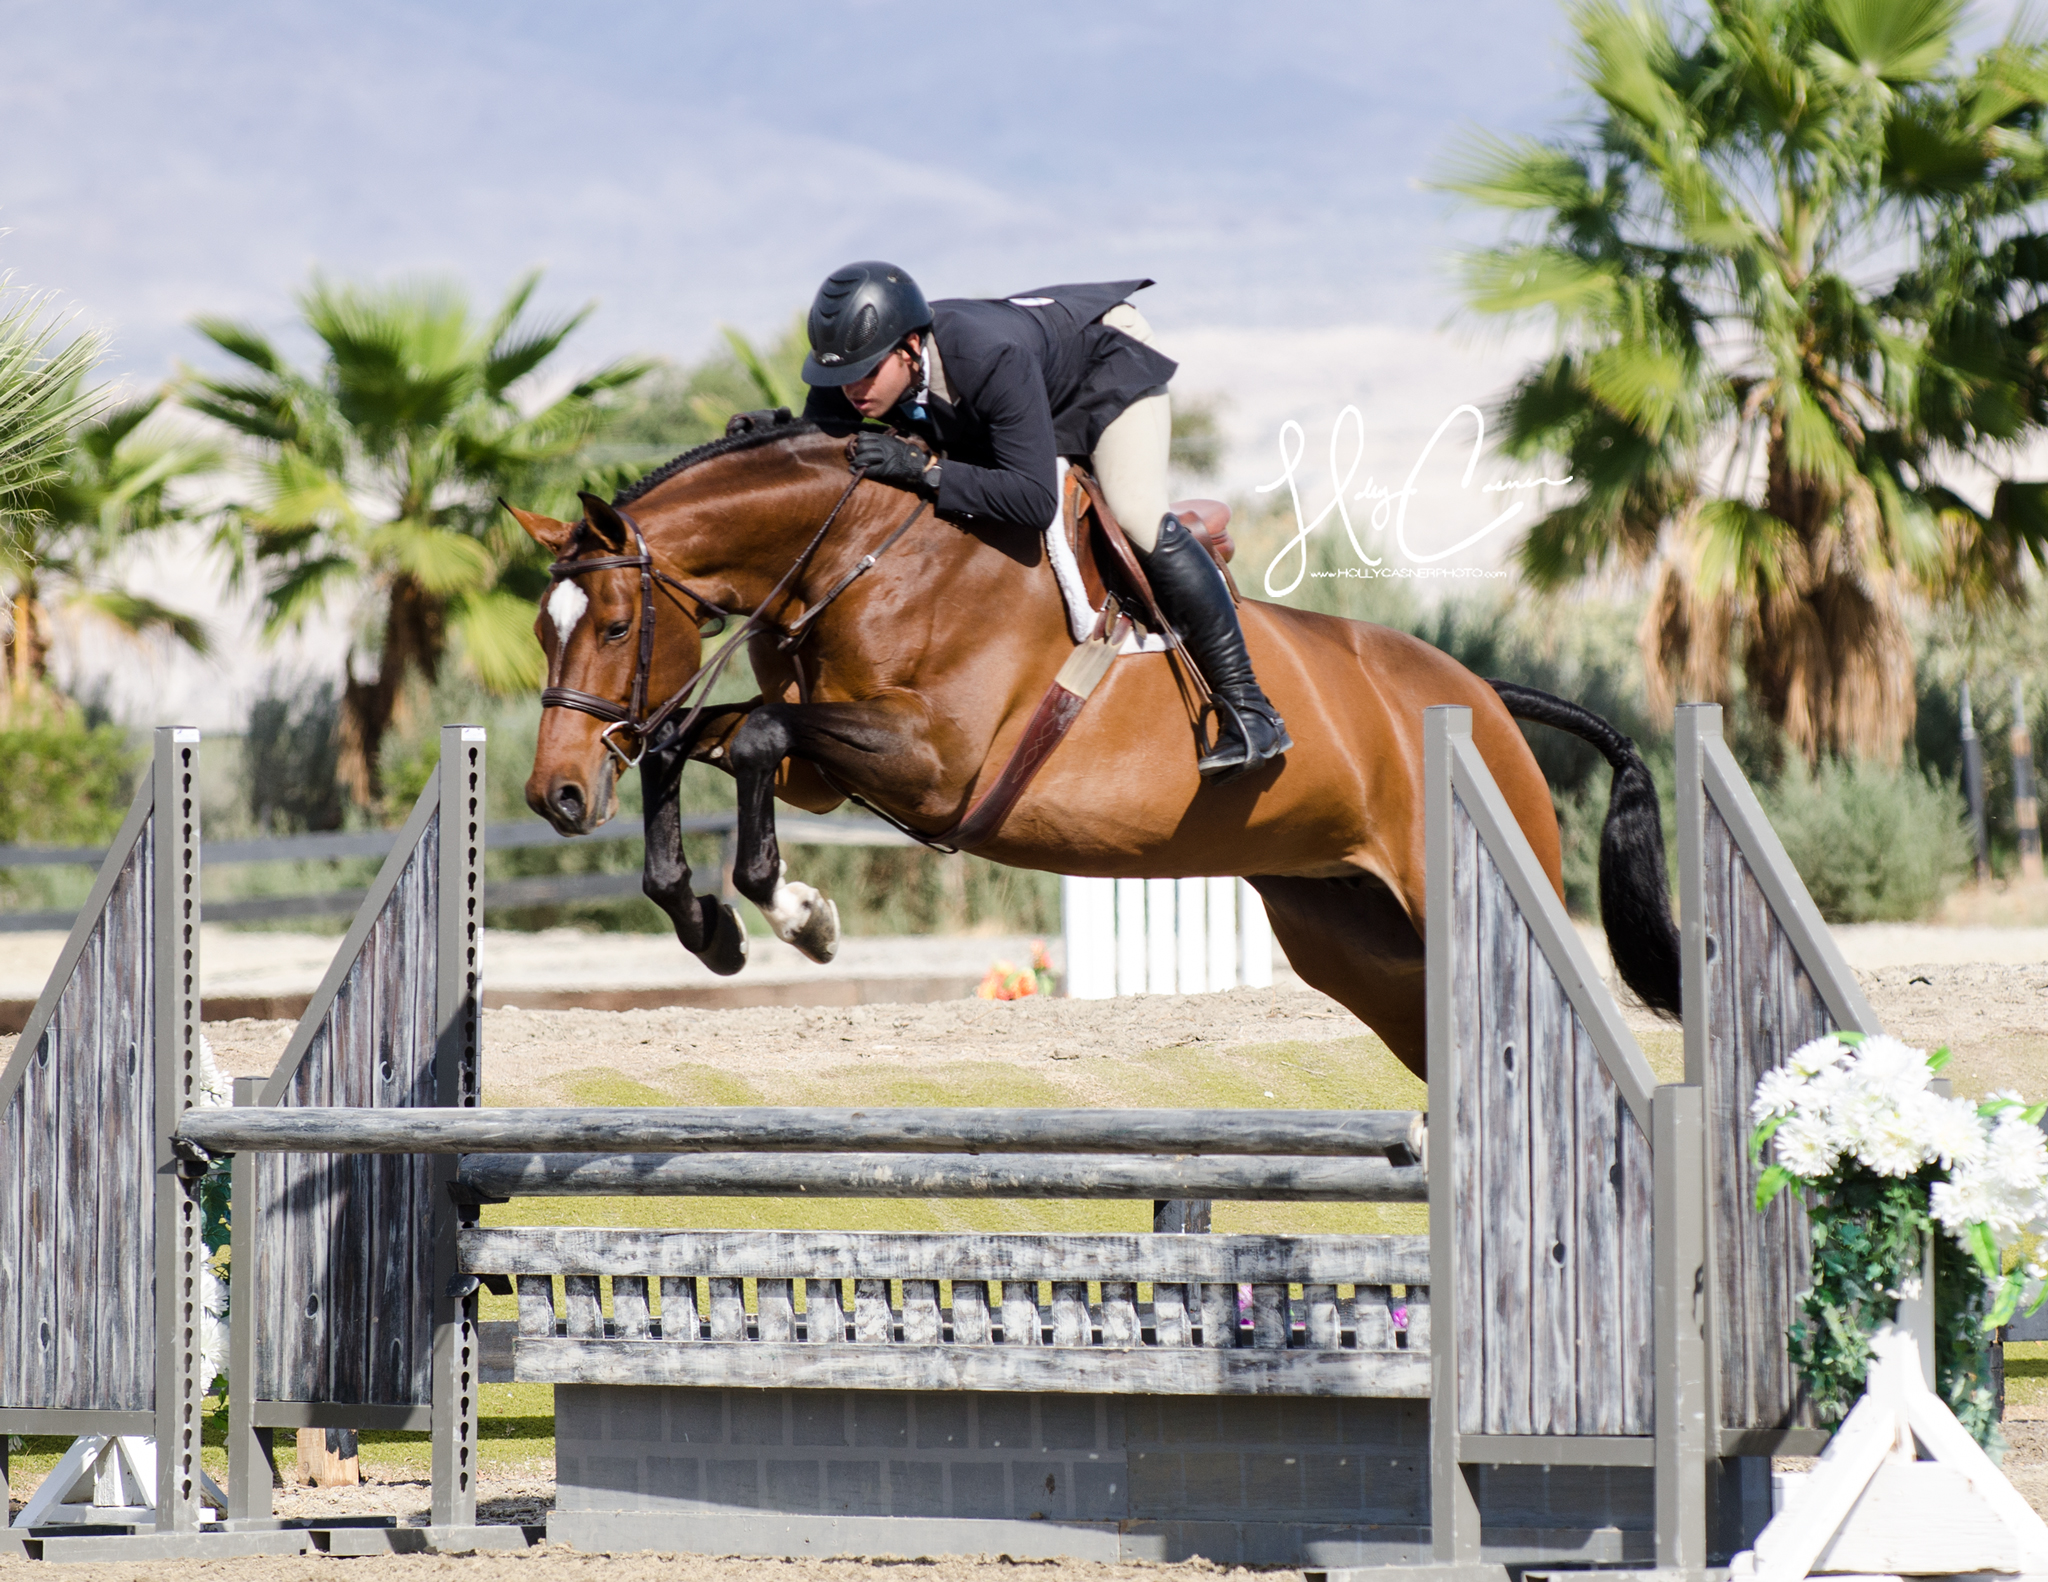 Holly Casner, The Equestrian Photographer – Horse Show Photography – Hunters